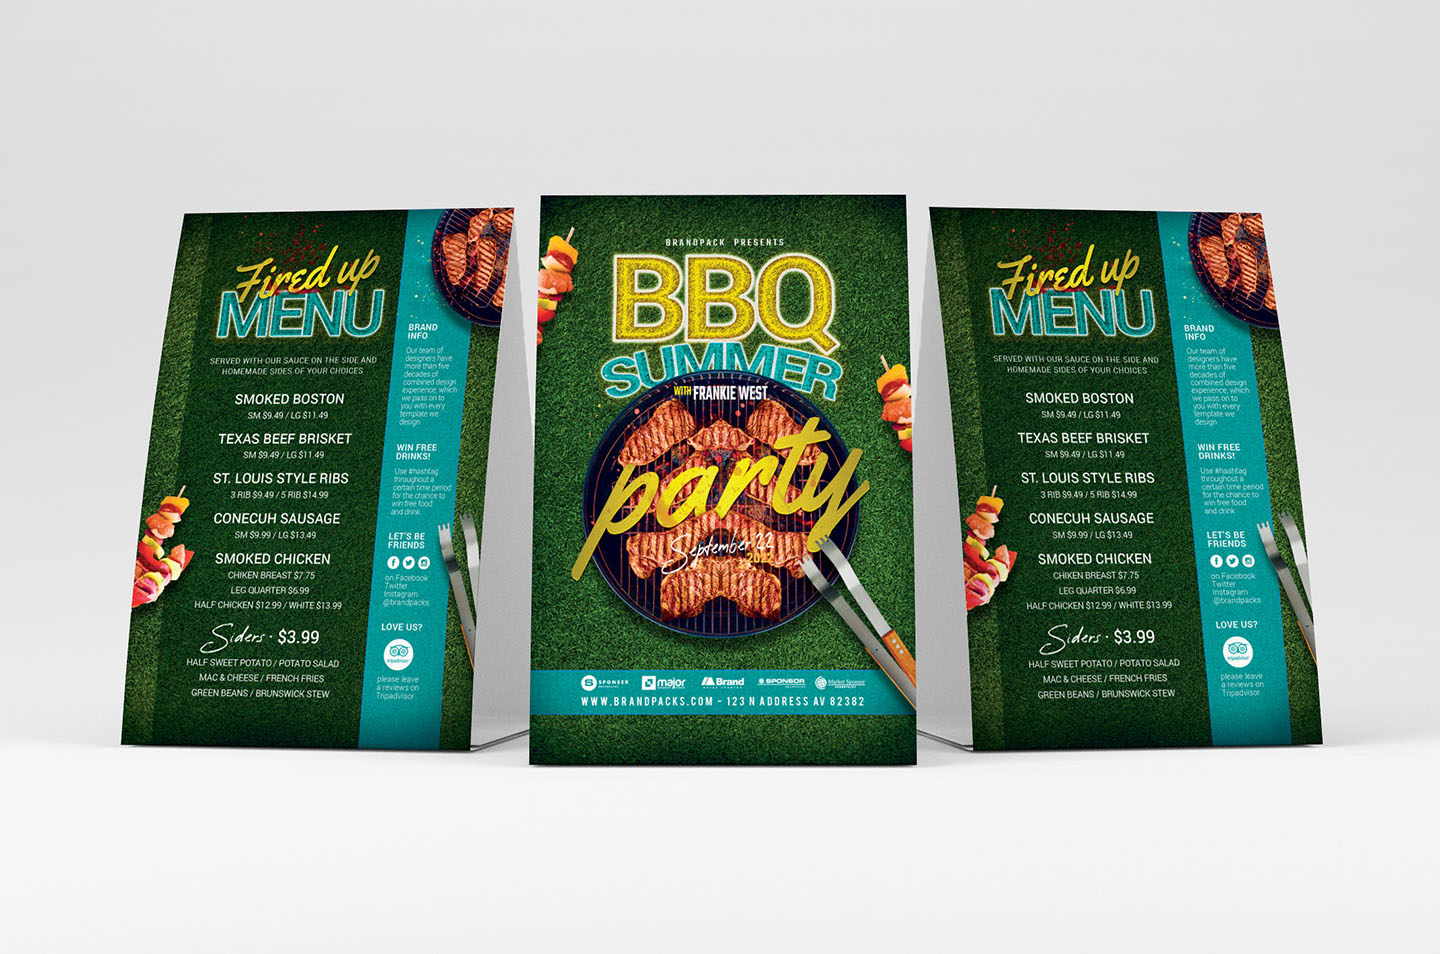 BBQ Cookout Flyer Template example image 3